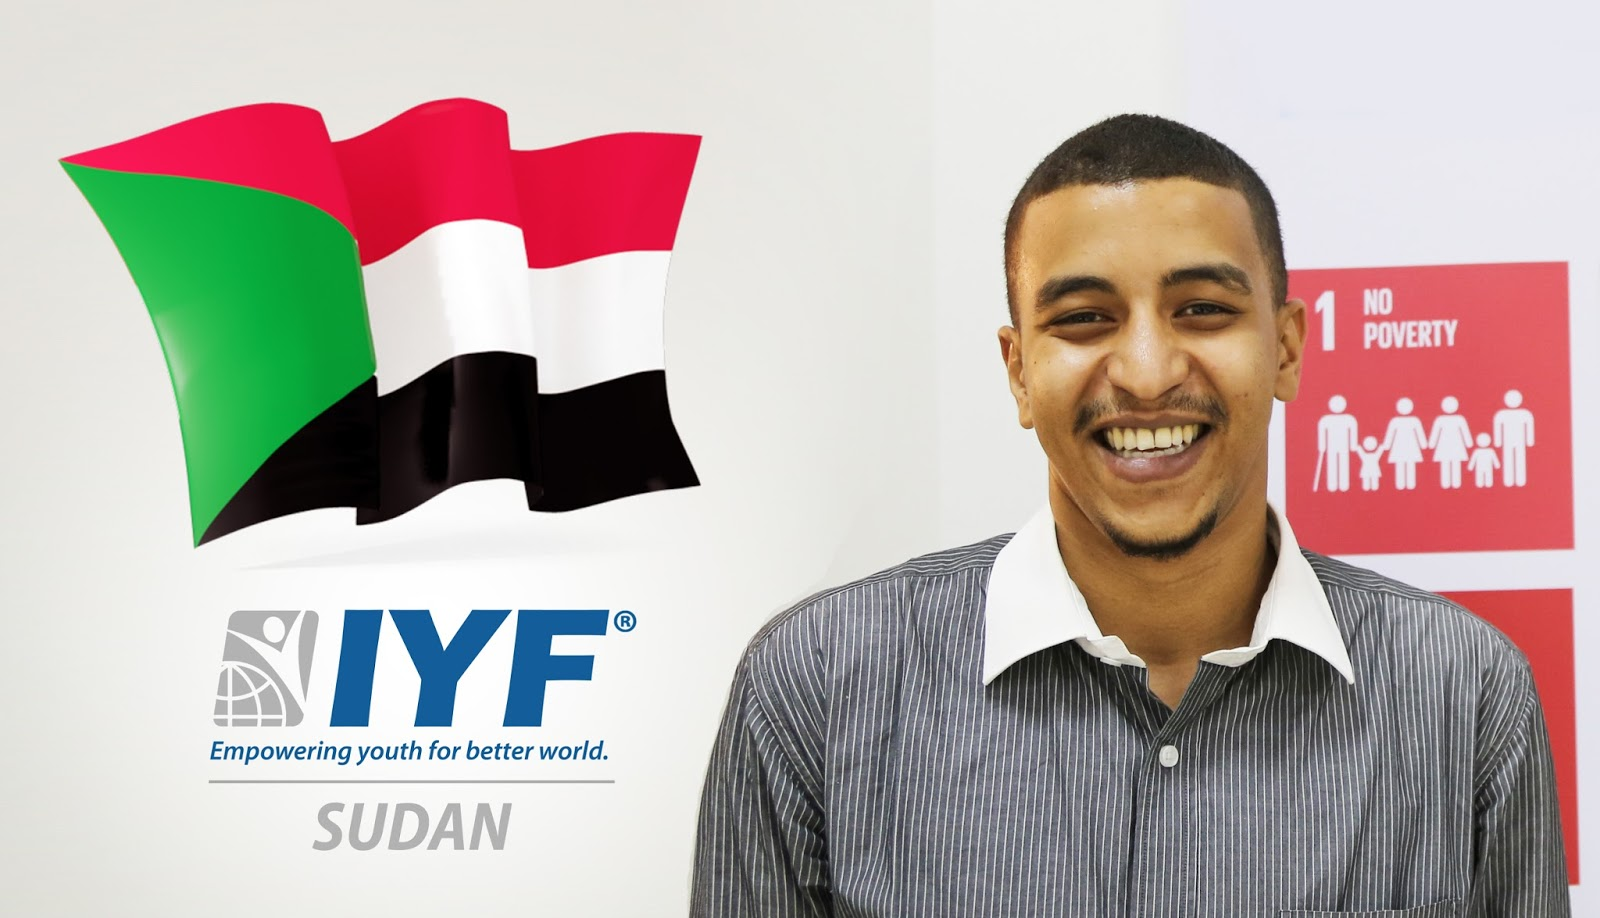 Mohamed Yousif, IYF Representative in Sudan